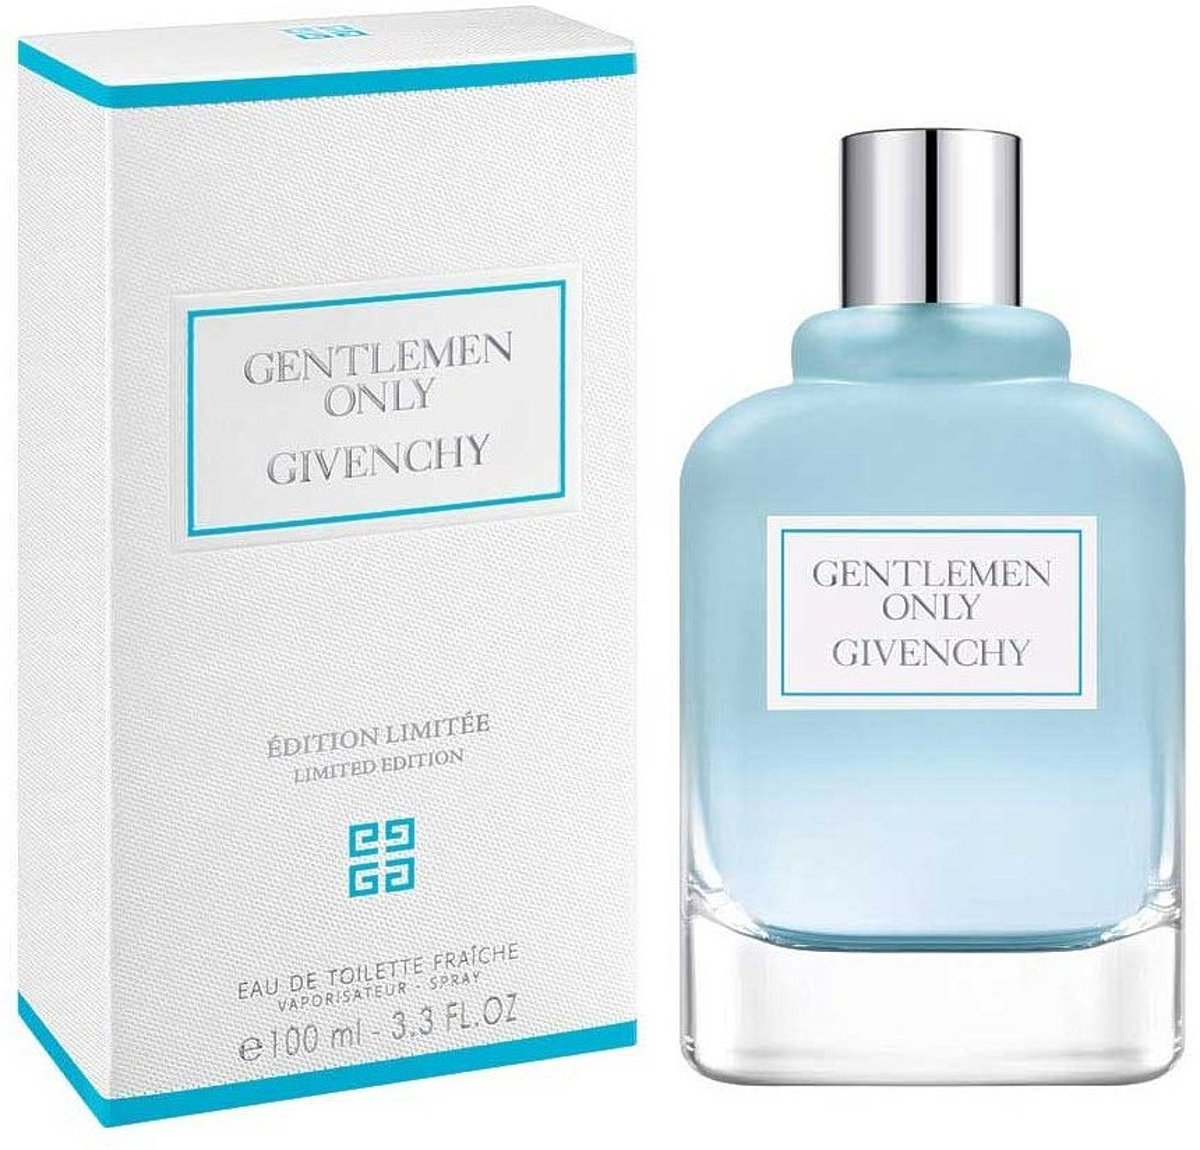 Givenchy Gentlemen Only Edition Limited EDT Fraiche 100ml